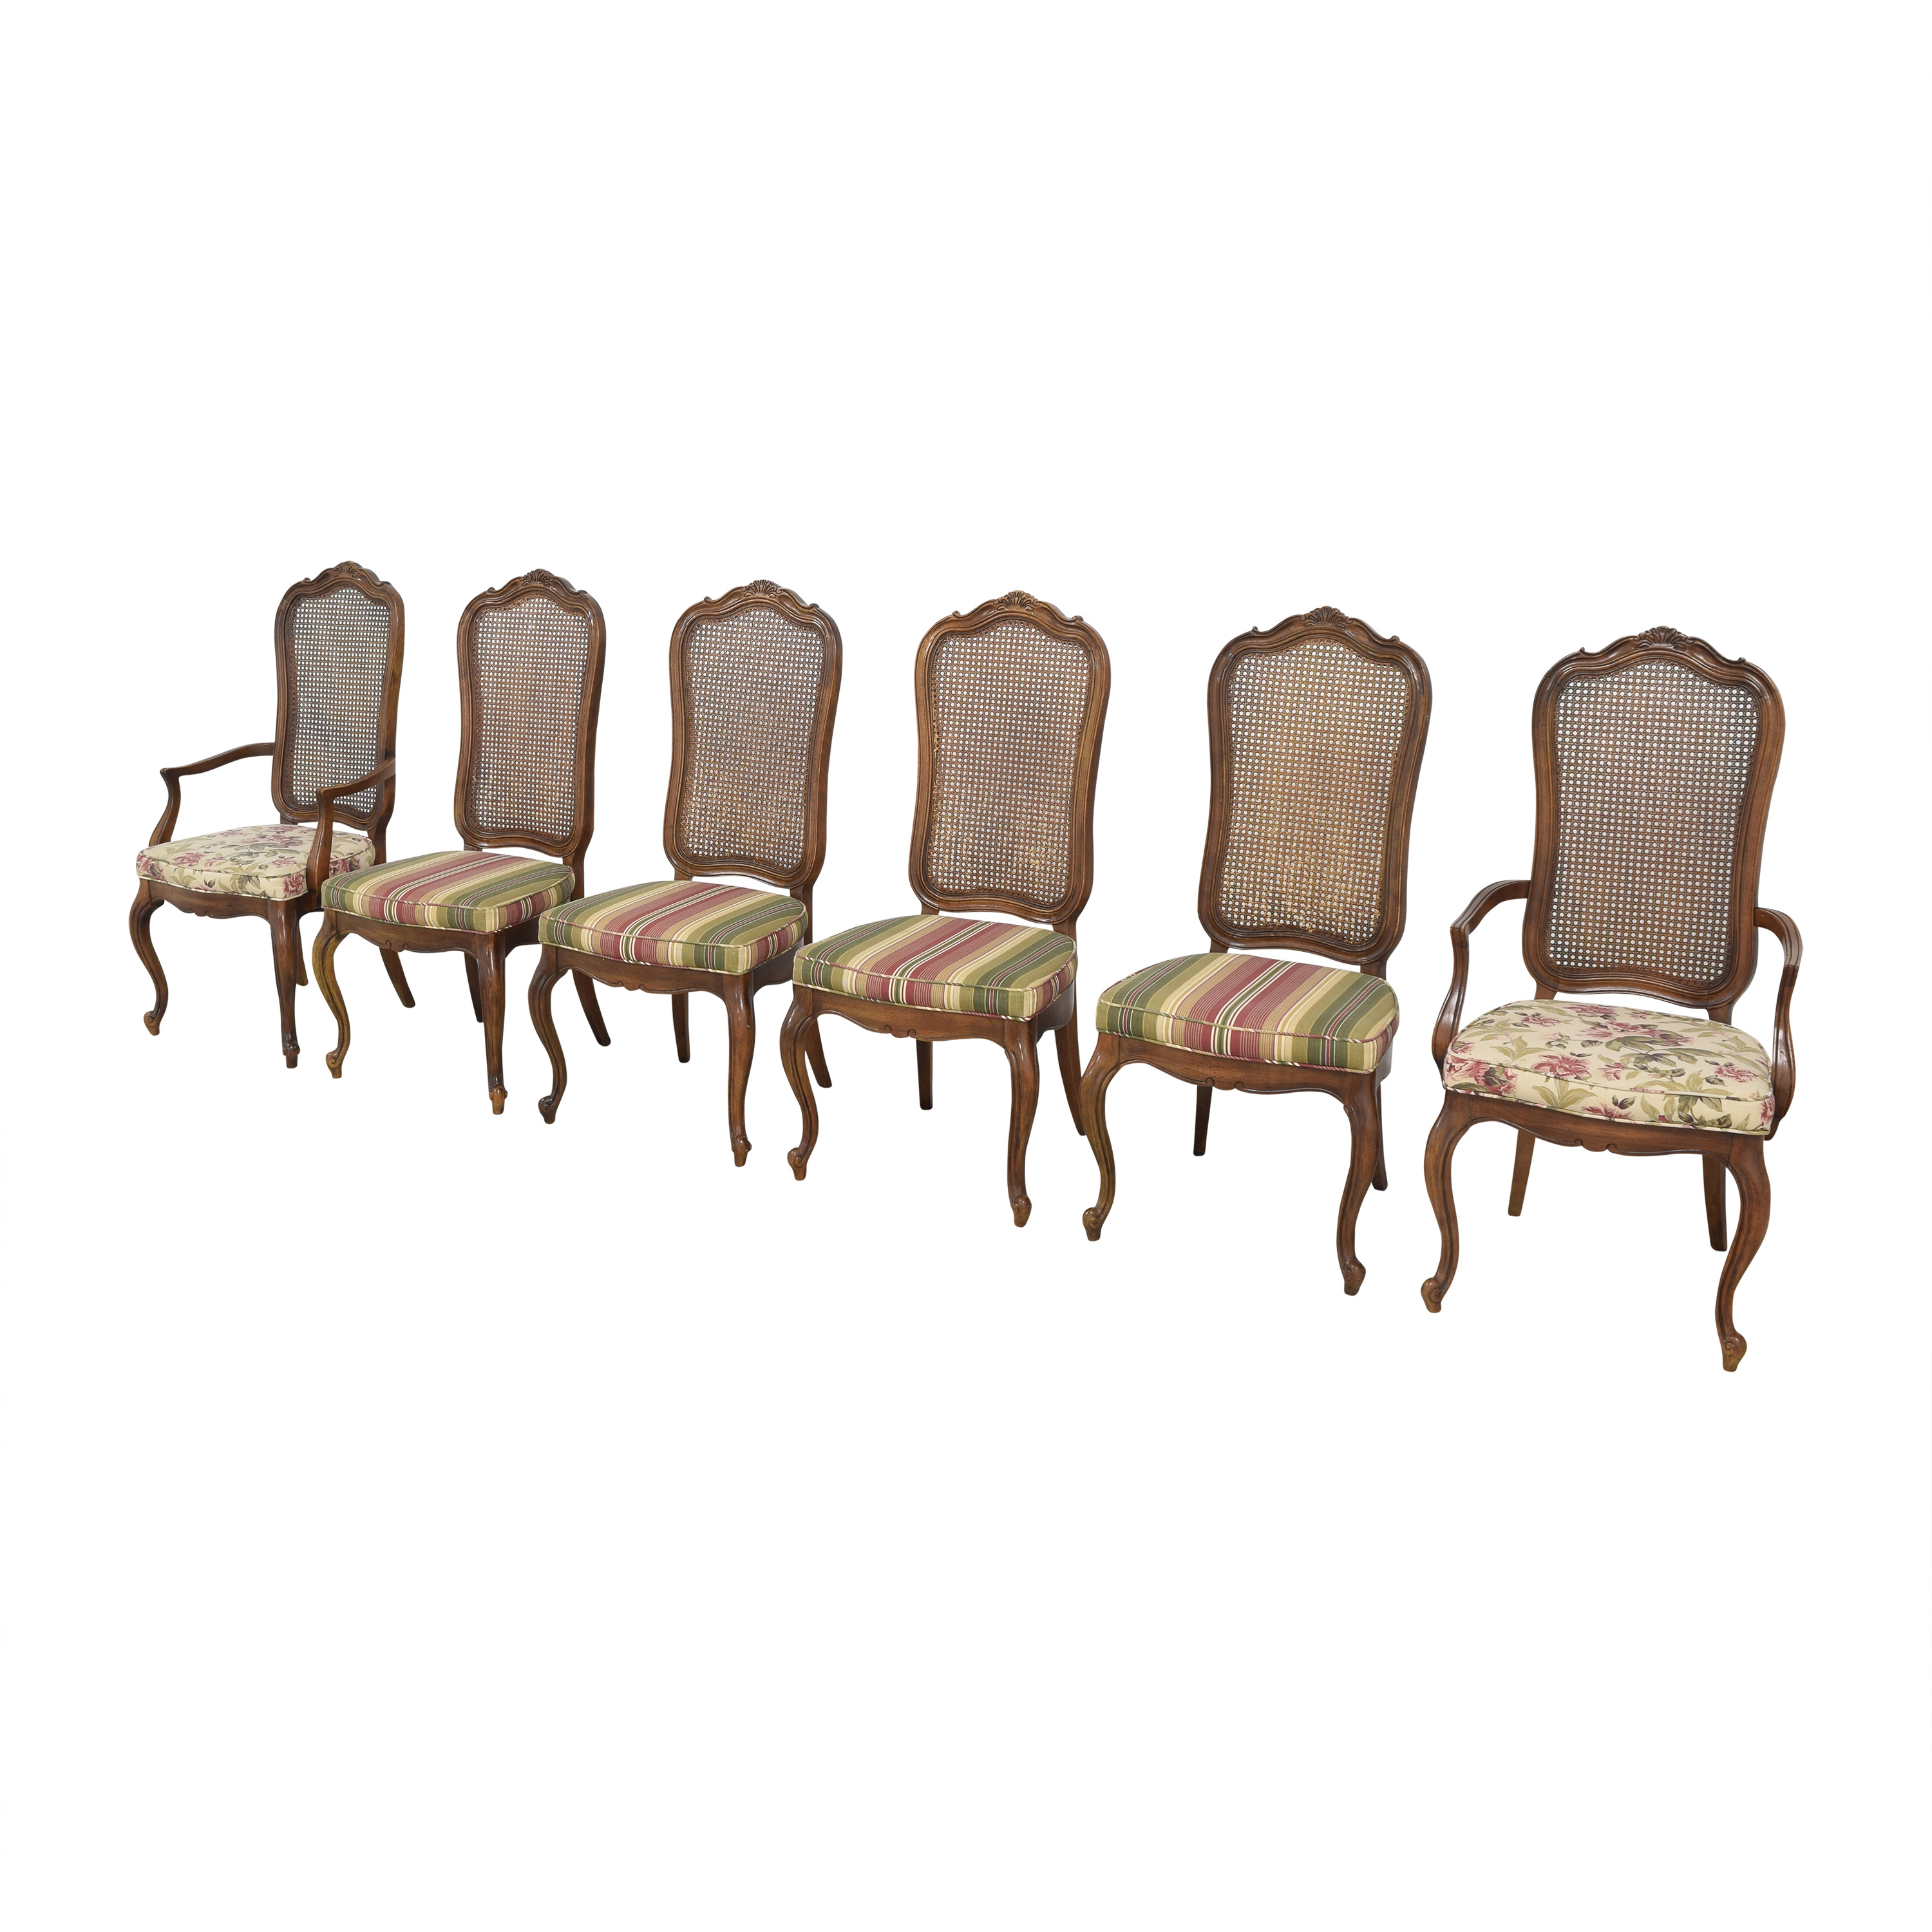 Thomasville Thomasville Cane Back Dining Chairs dimensions